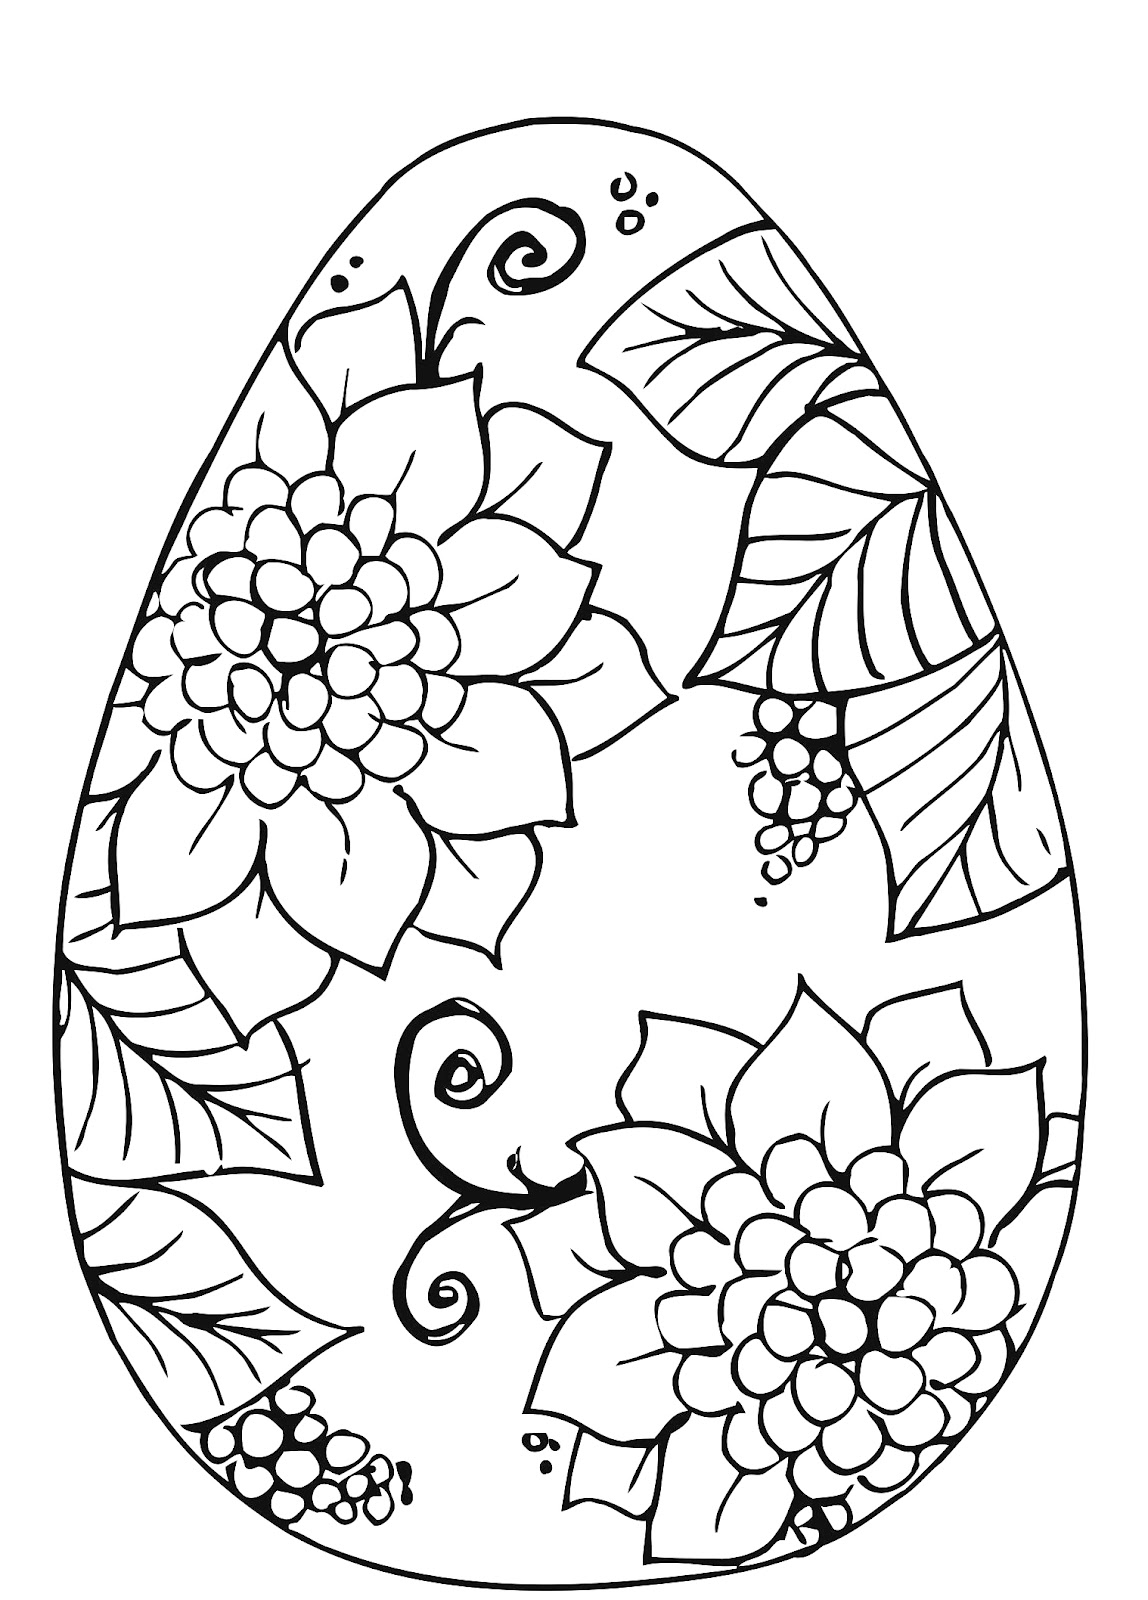 every pattern coloring pages - photo#11